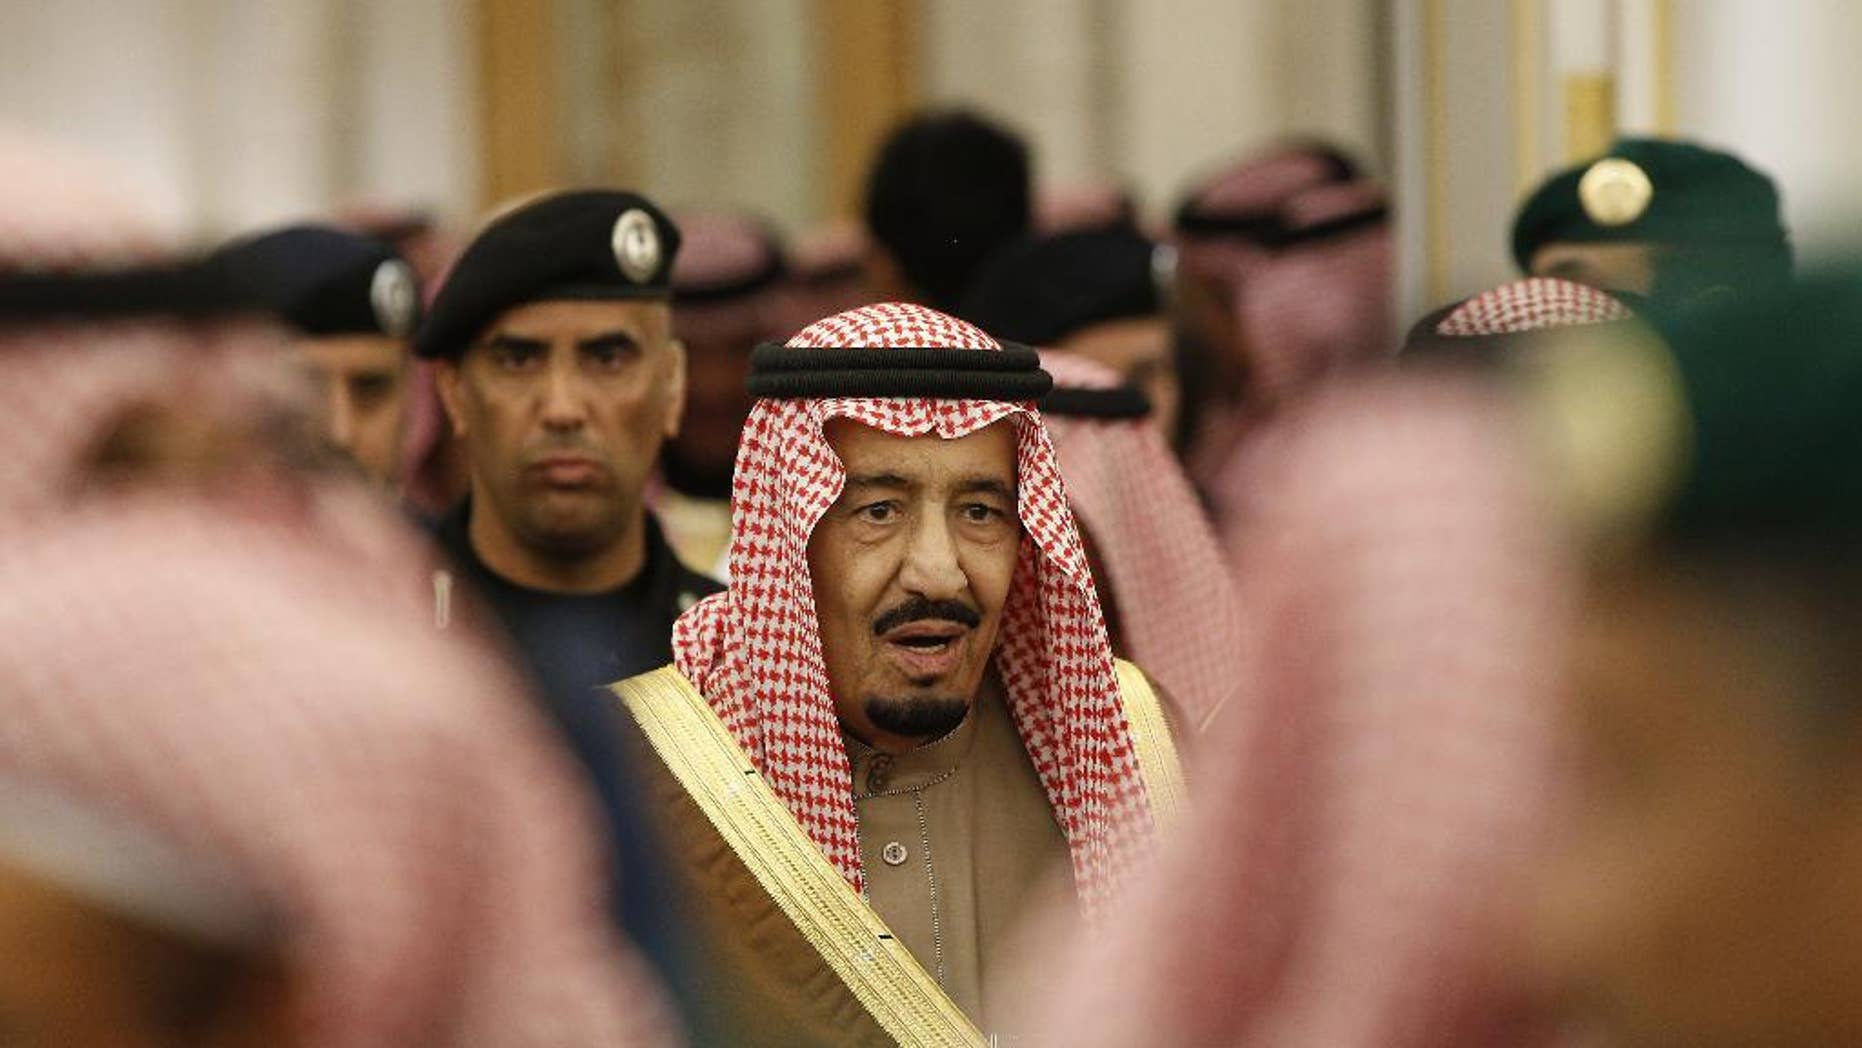 FILE - In this Jan. 24, 2015 file photo, Saudi Arabia's King Salman attends a ceremony at the Diwan royal palace in Riyadh. Saudi Arabia's King Salman is reducing the salaries and benefits of senior government officials as lower oil prices continue to pinch the kingdom's economy, but a separate decision also cuts bonuses for public sector employees. (AP Photo/Yoan Valat, Pool, File)